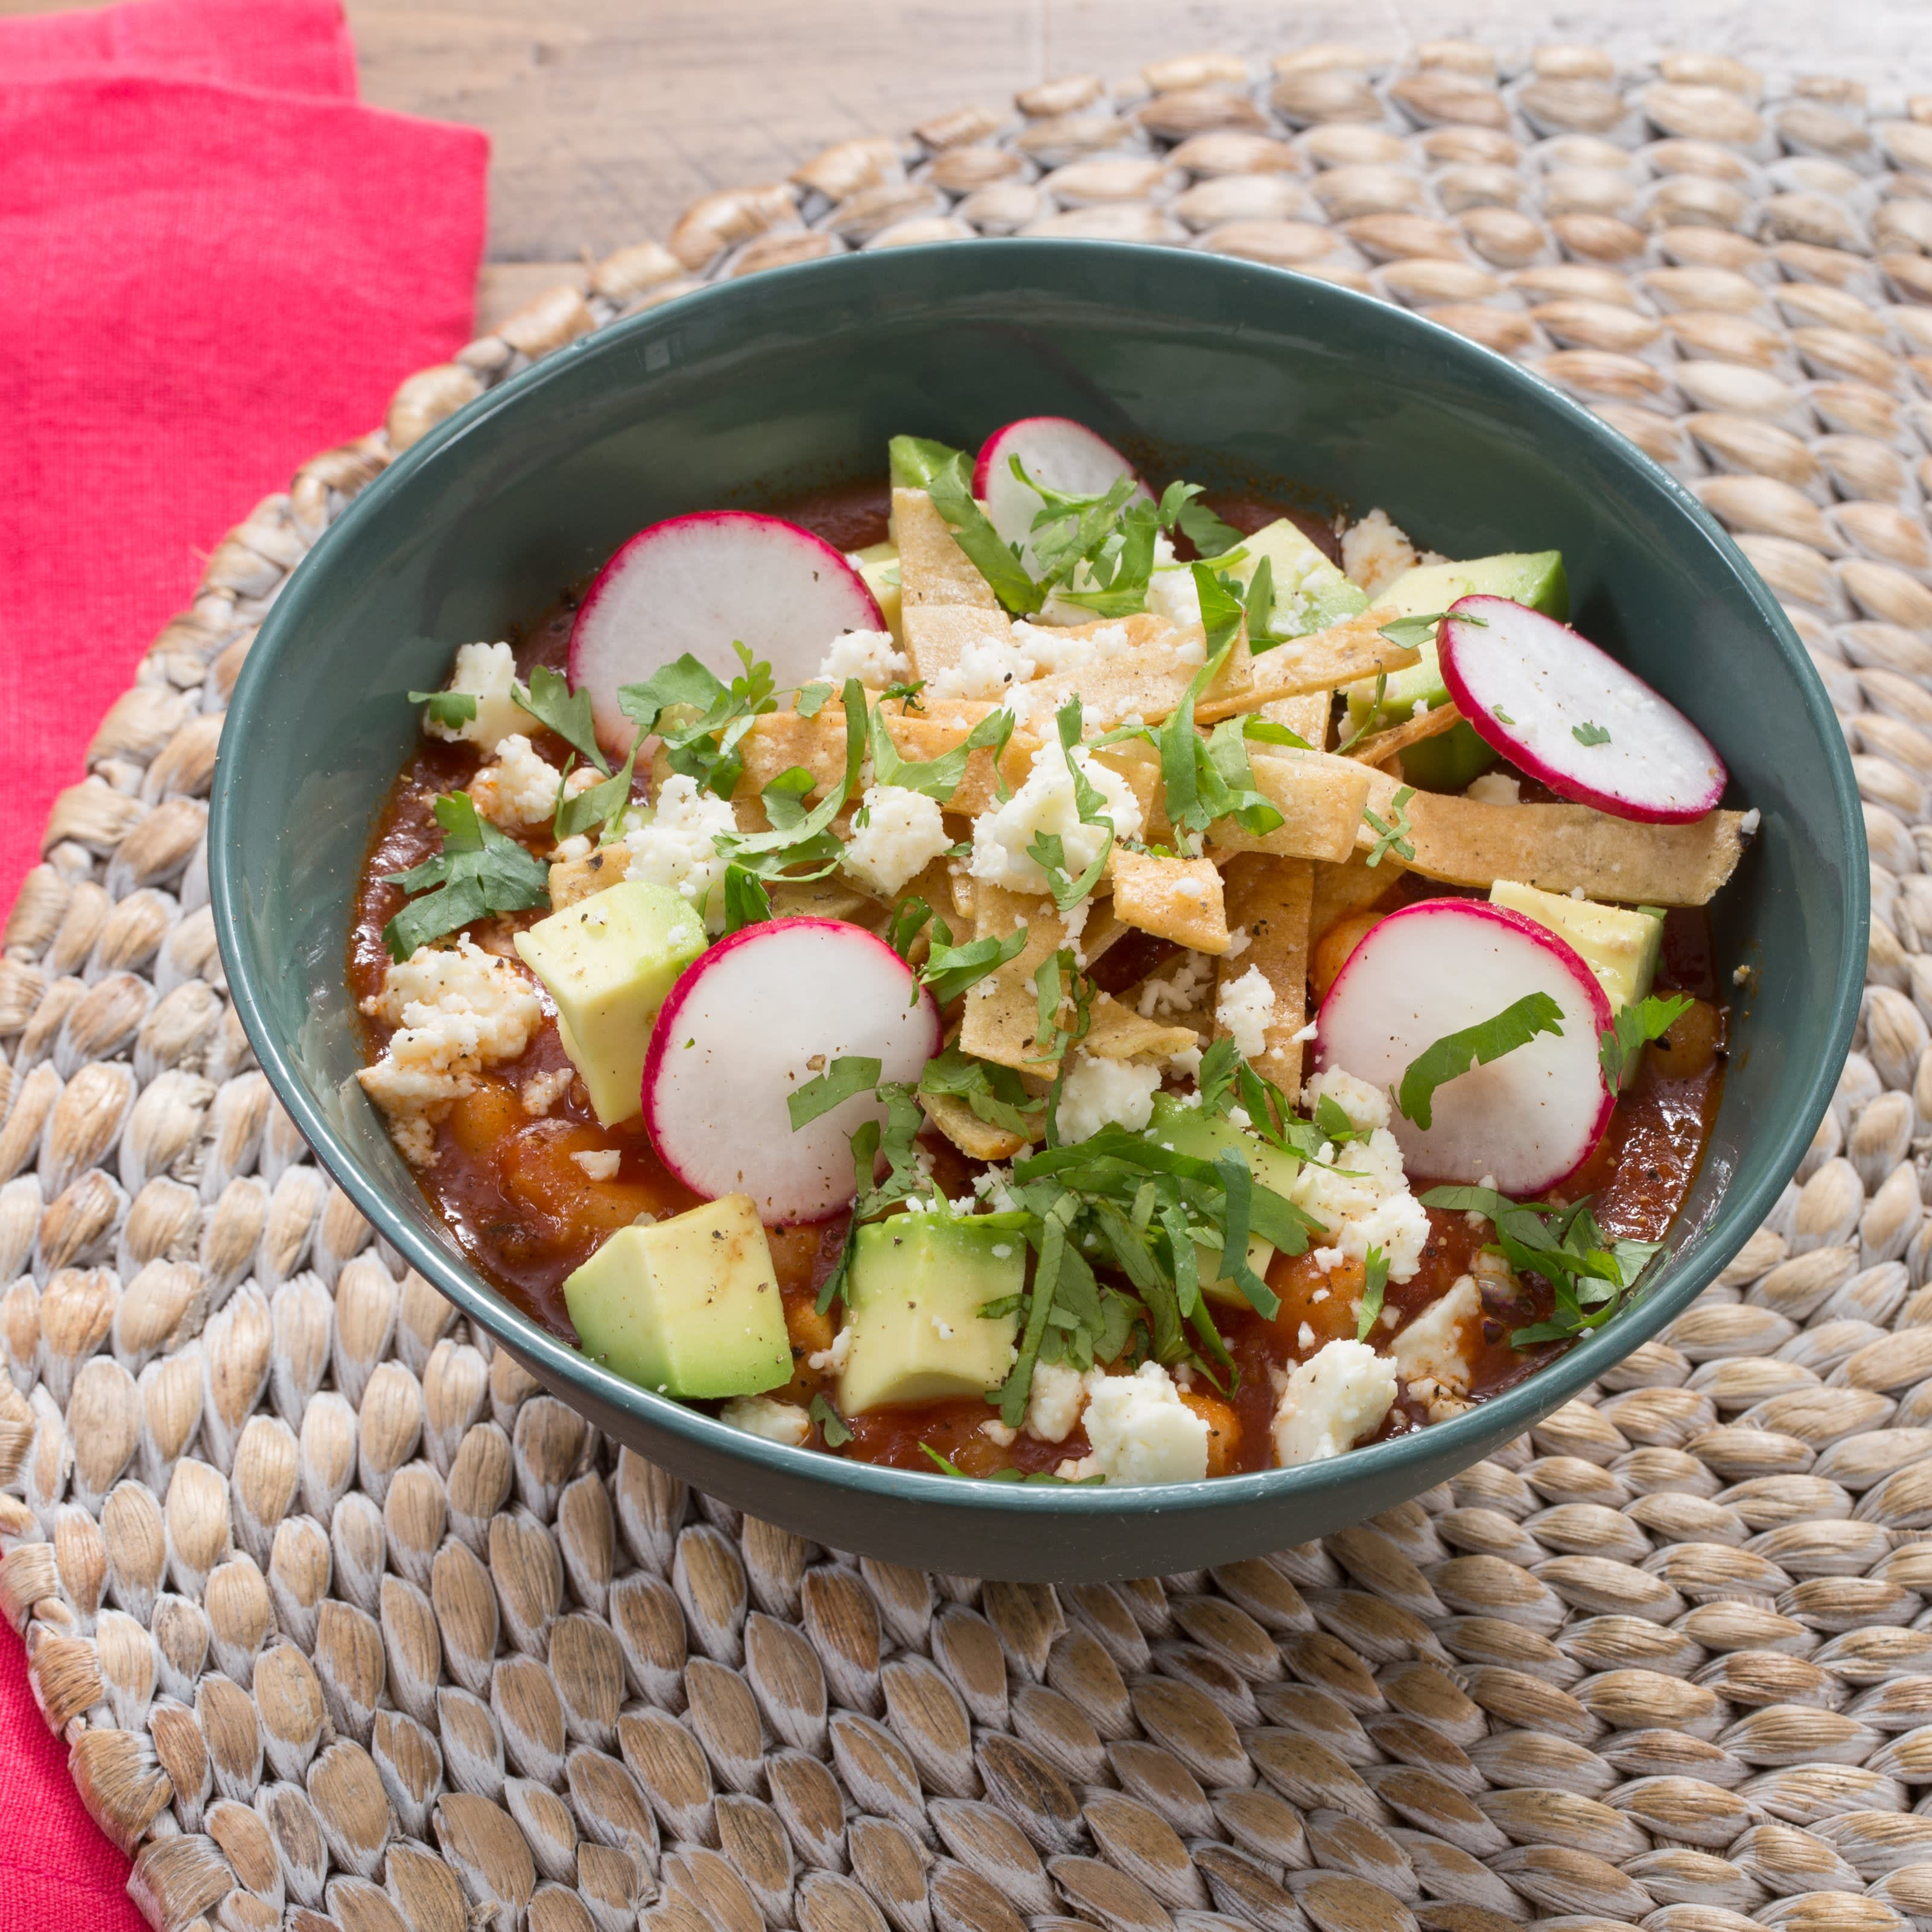 7 Reasons To Give Blue Apron a Try Today: gallery image 2